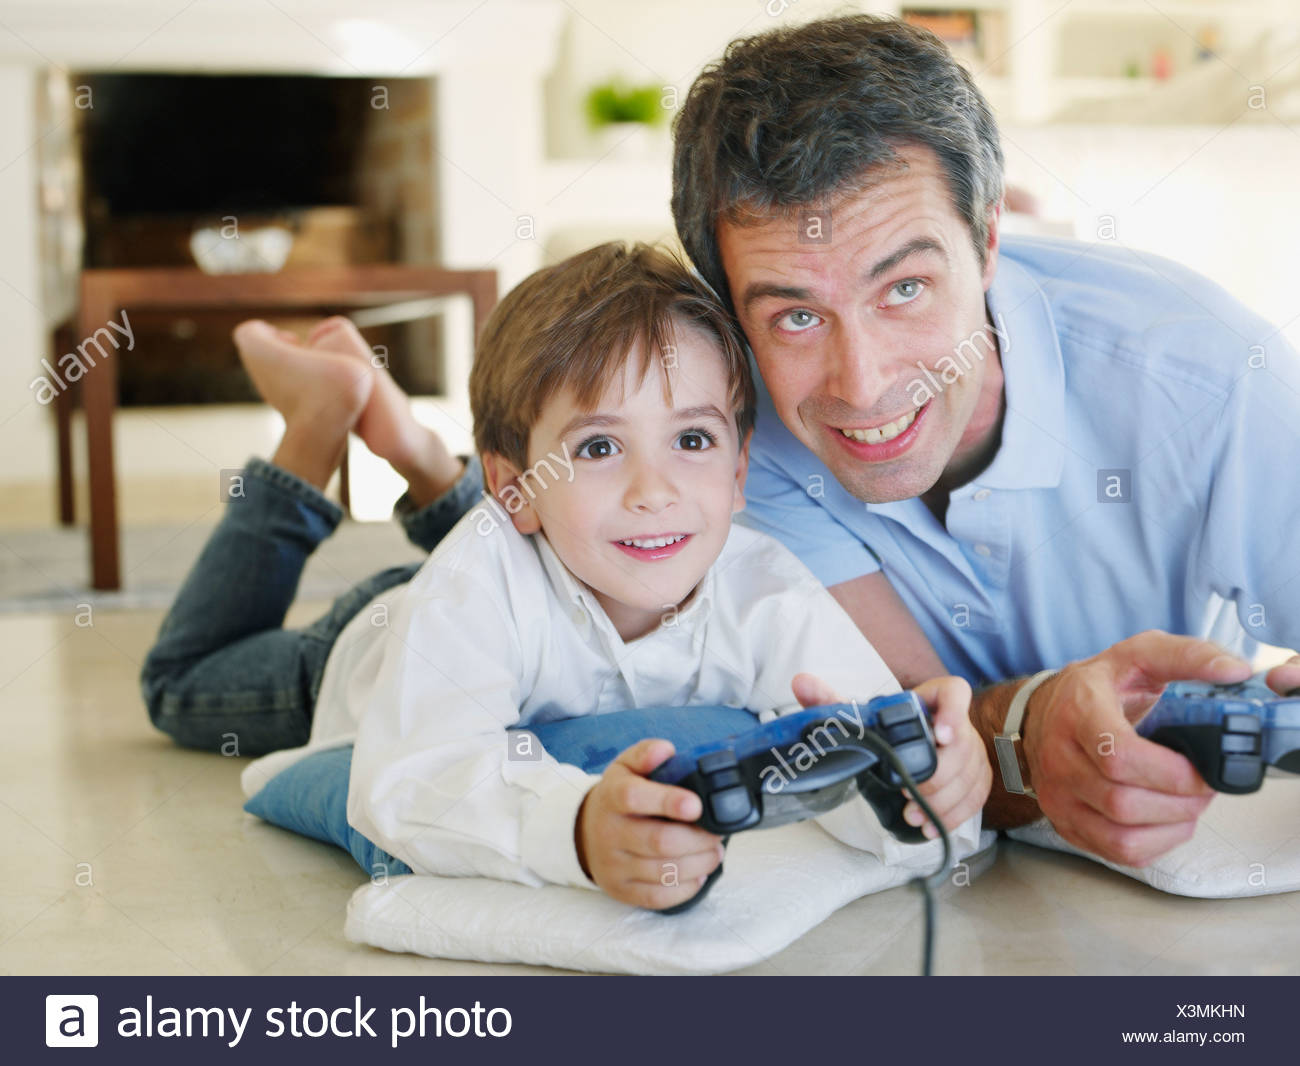 Father and son playing video game together Stock Photo